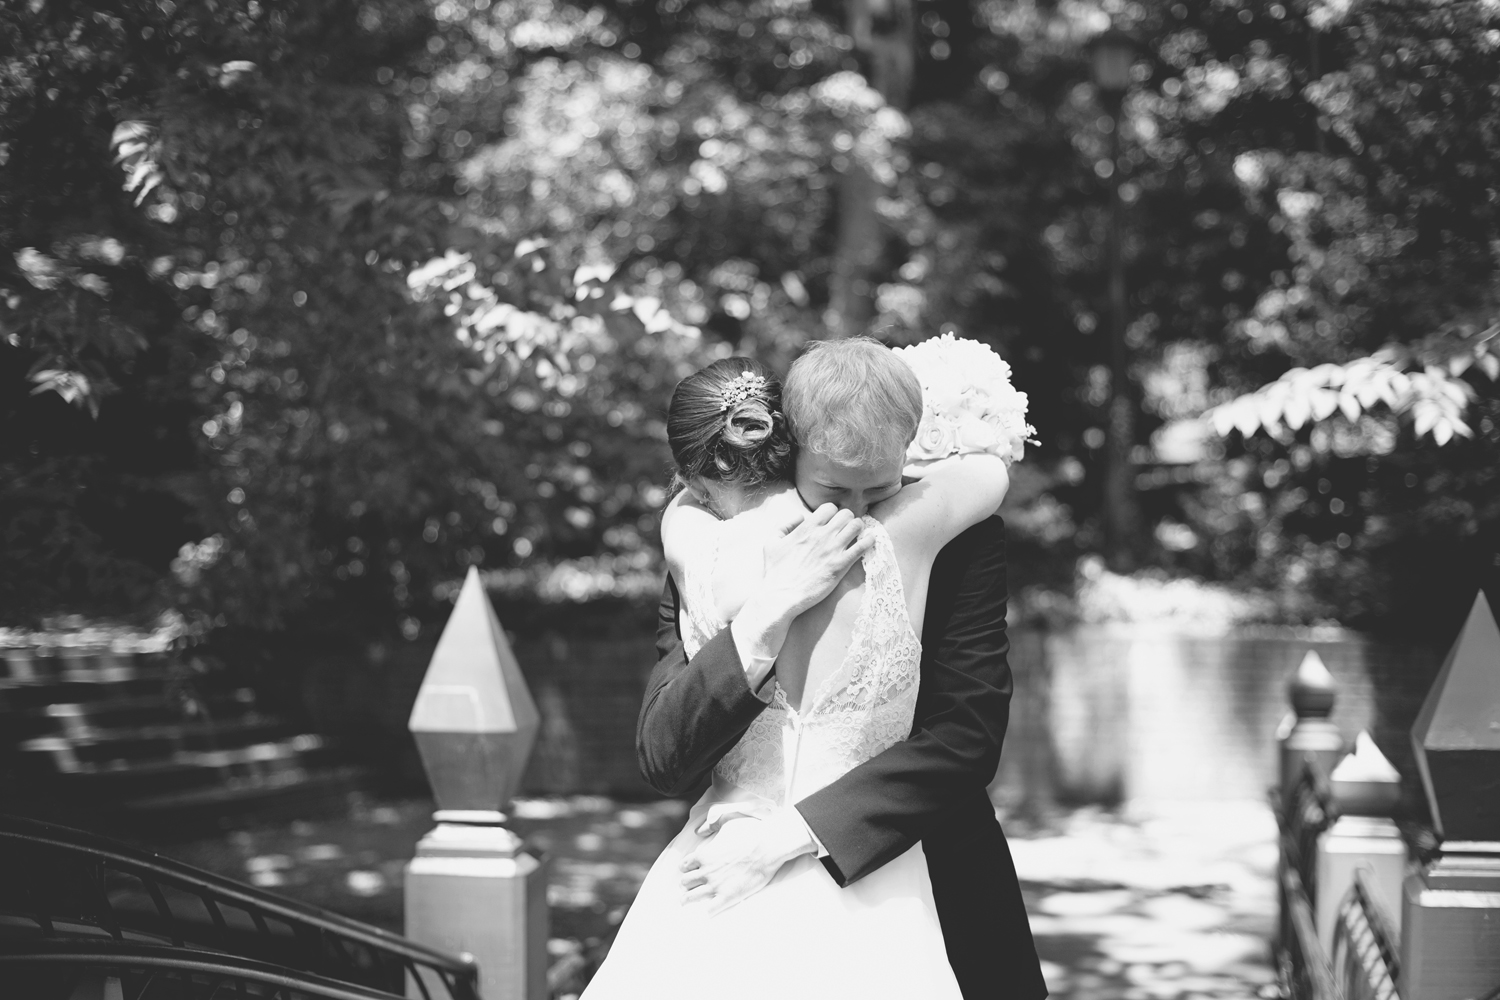 Crim Dell Bride at William and Mary Wedding |  First look bride & groom portraits